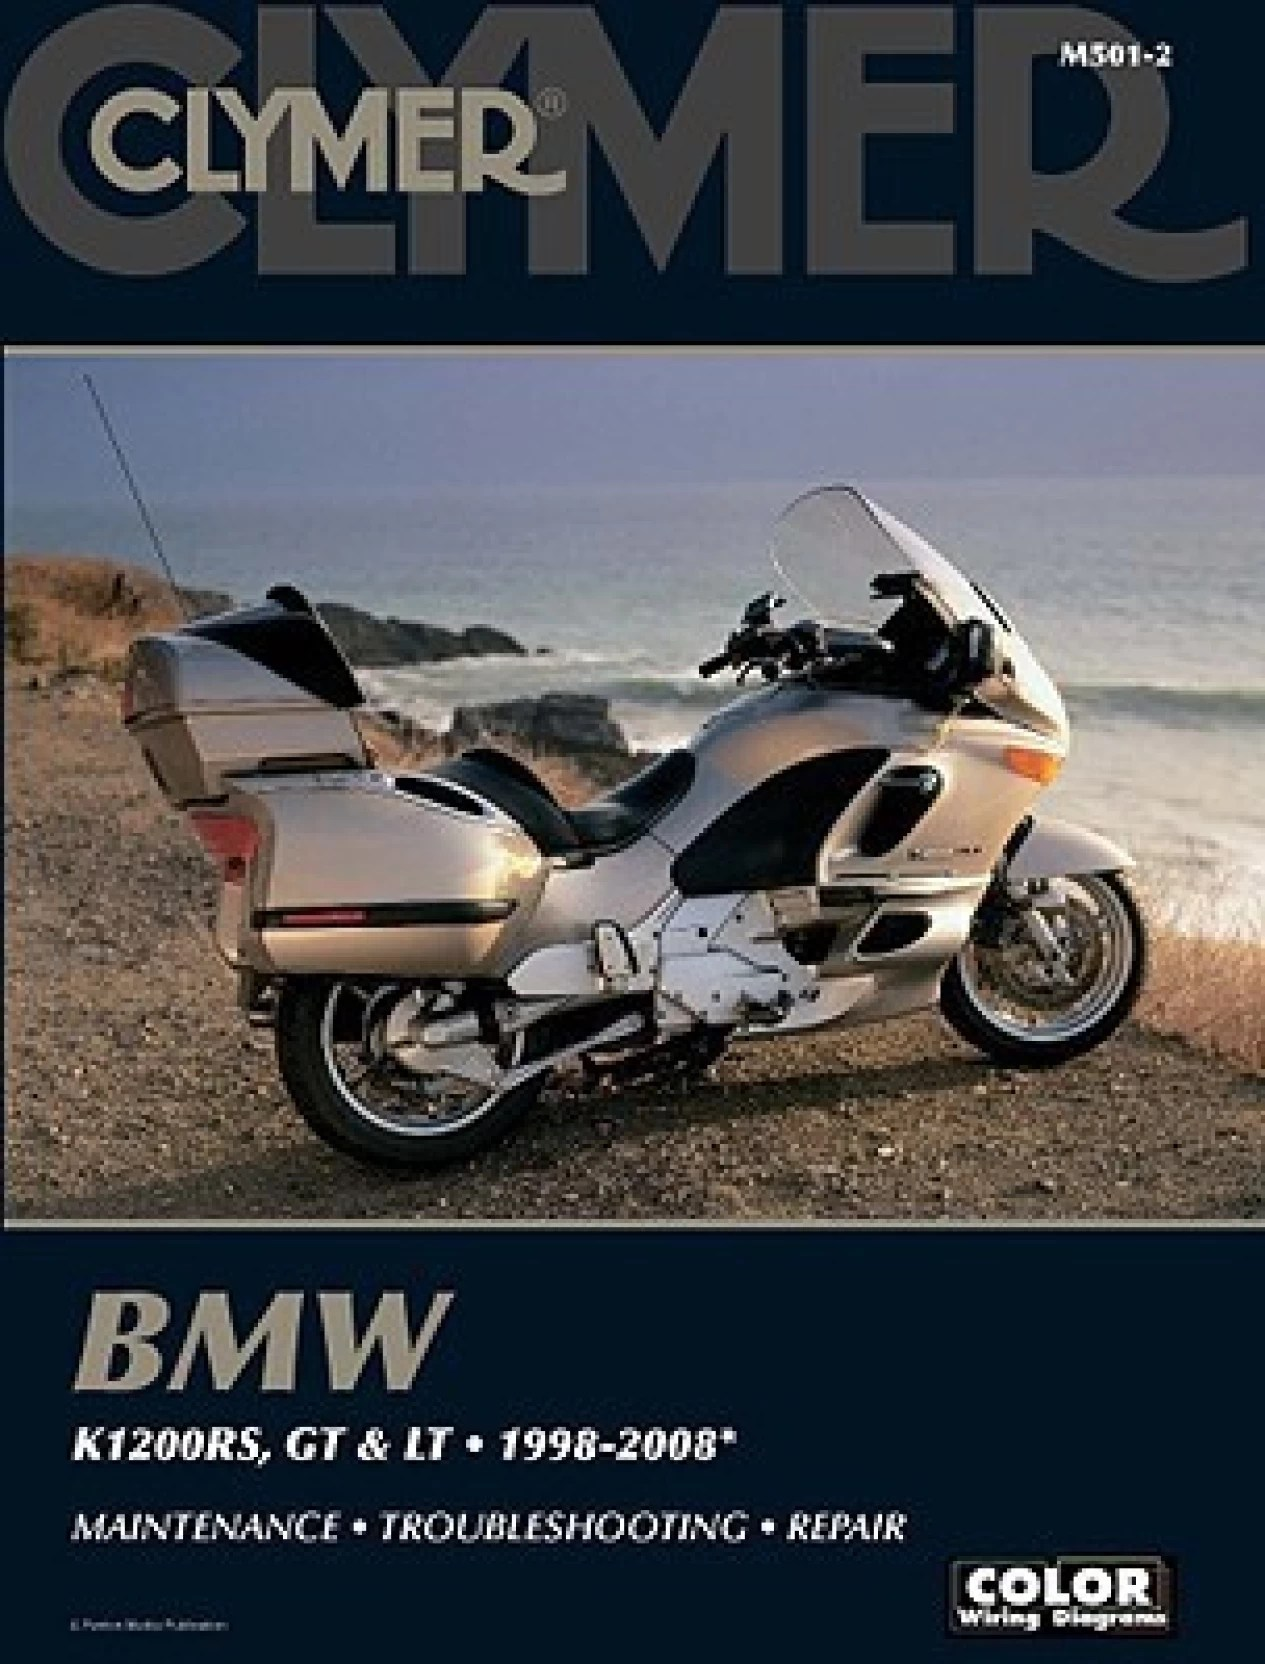 hight resolution of bmw k1200rs gt lt 1998 2008 clymer color wiring diagrams english paperback james grooms